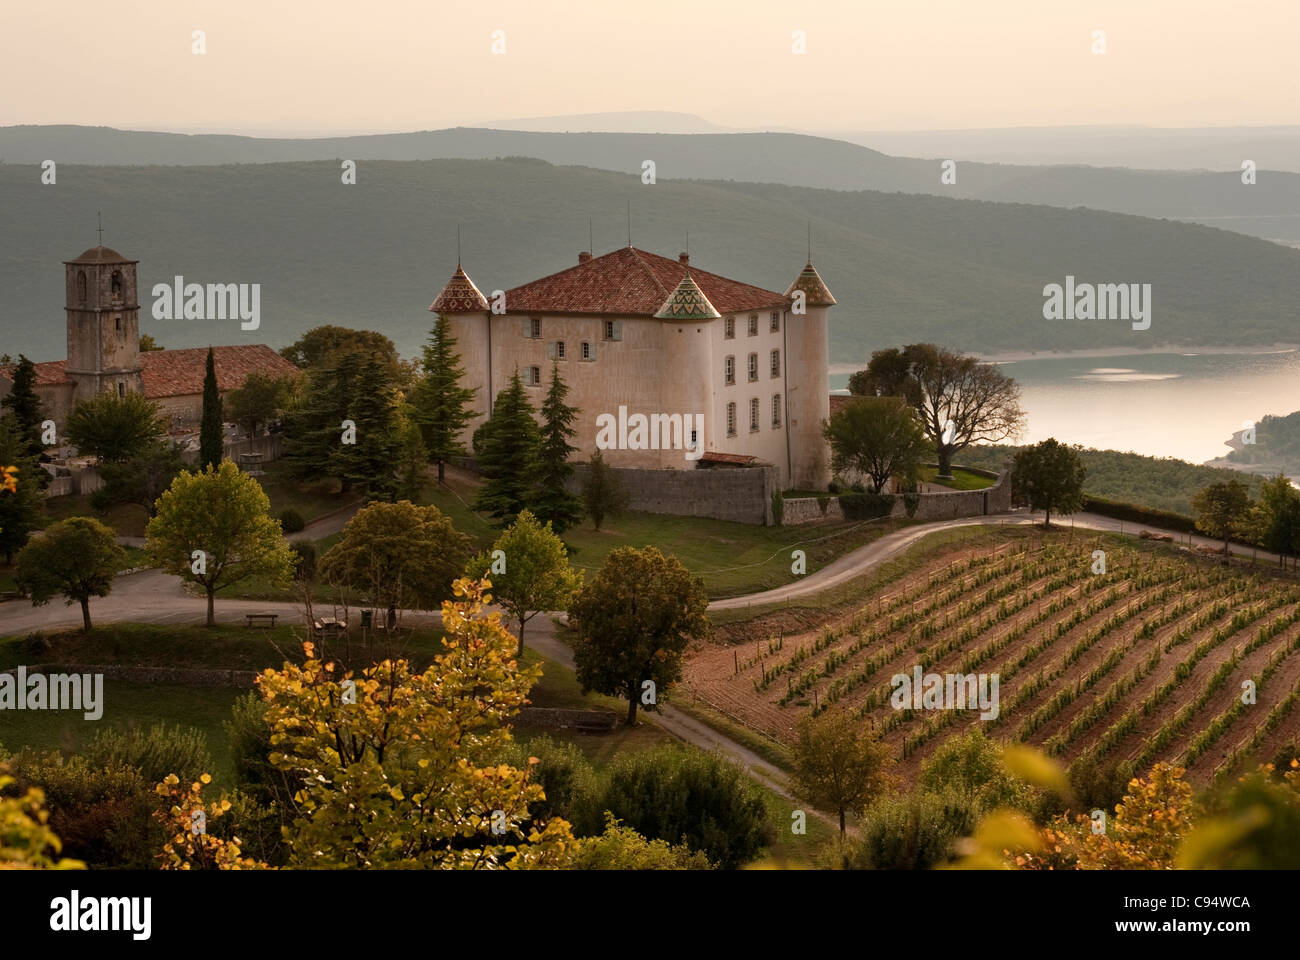 french chateau in the village of Aiguines overlooking Lac de Sainte Croix, France, Provence, Stock Photo